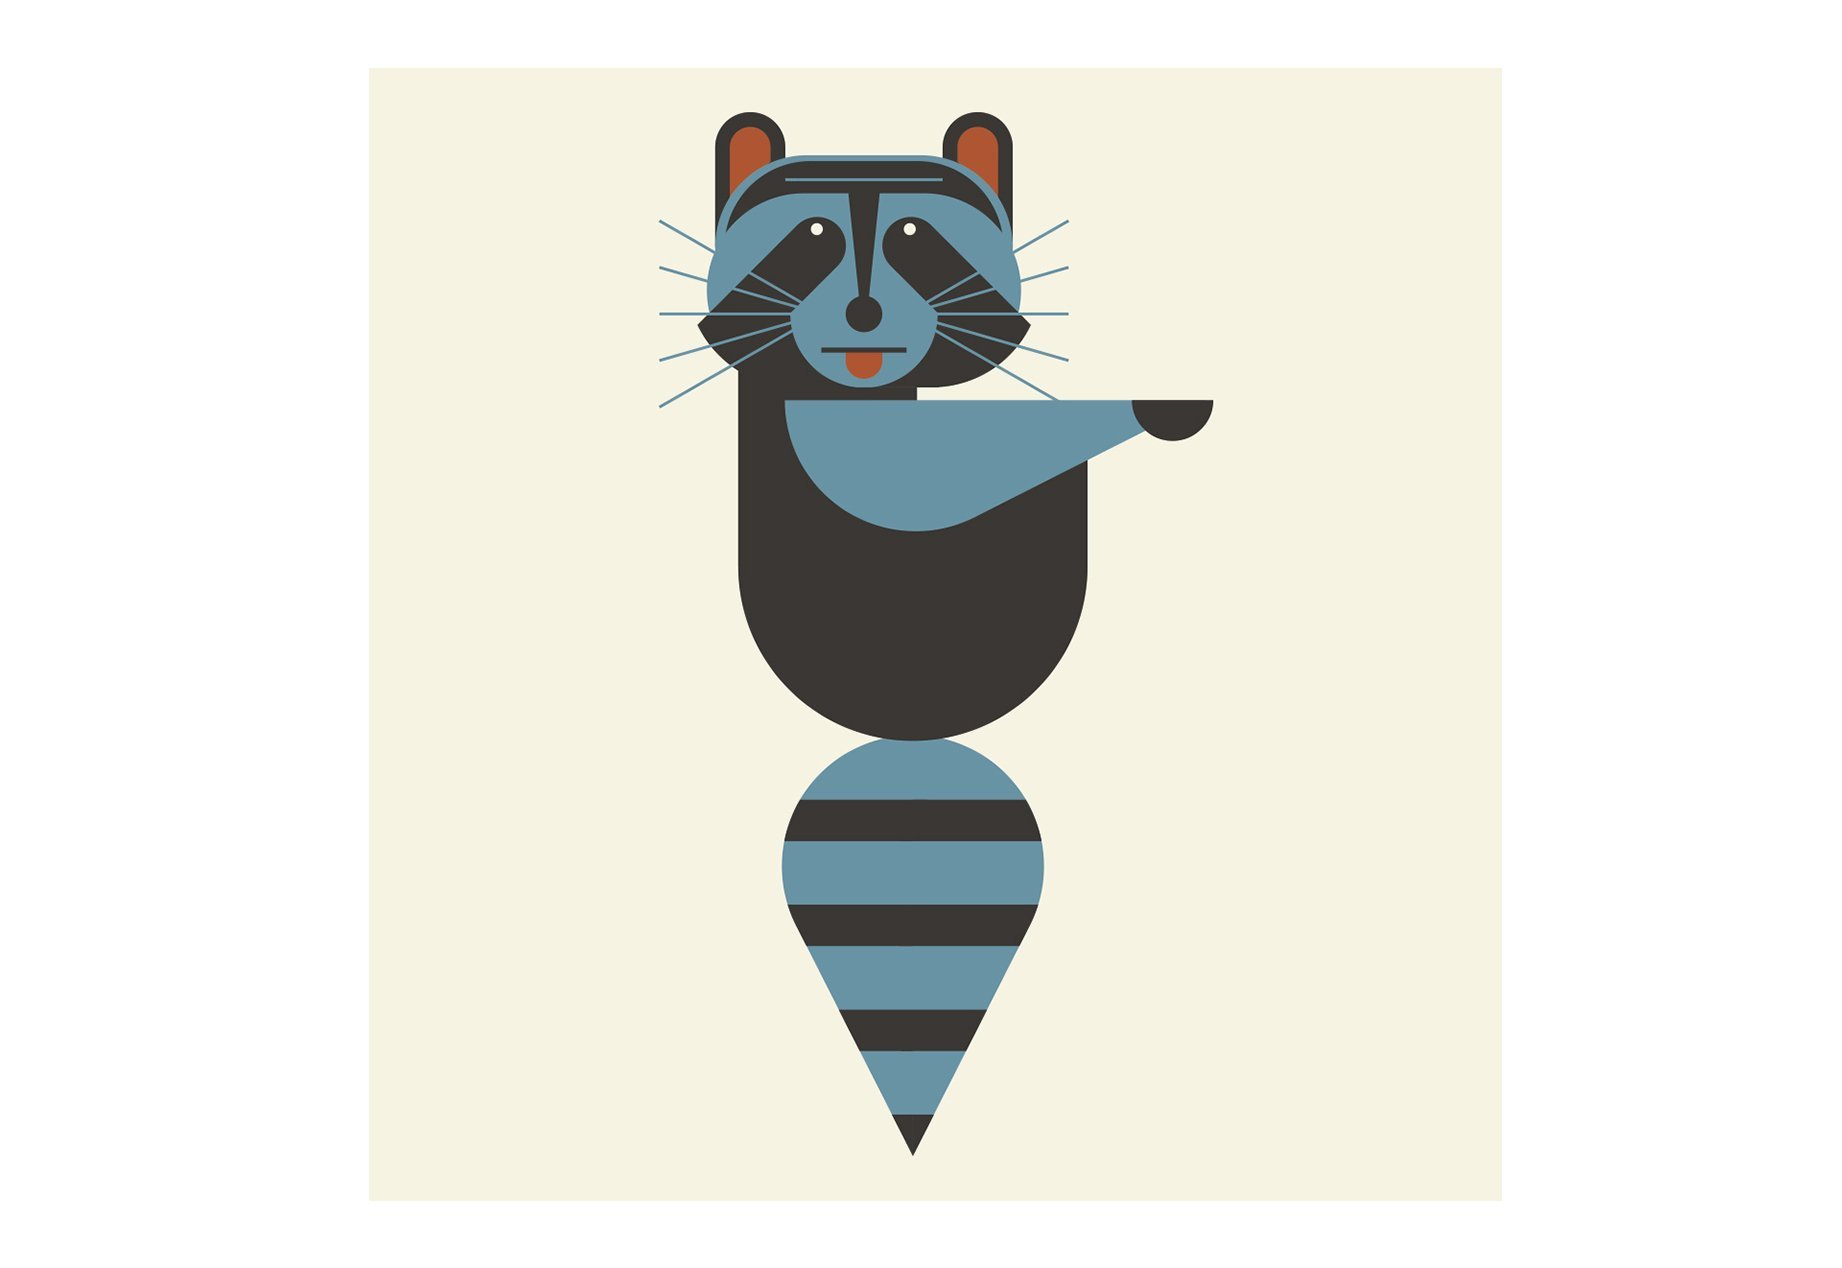 raccoon-illustration-alice-iuri